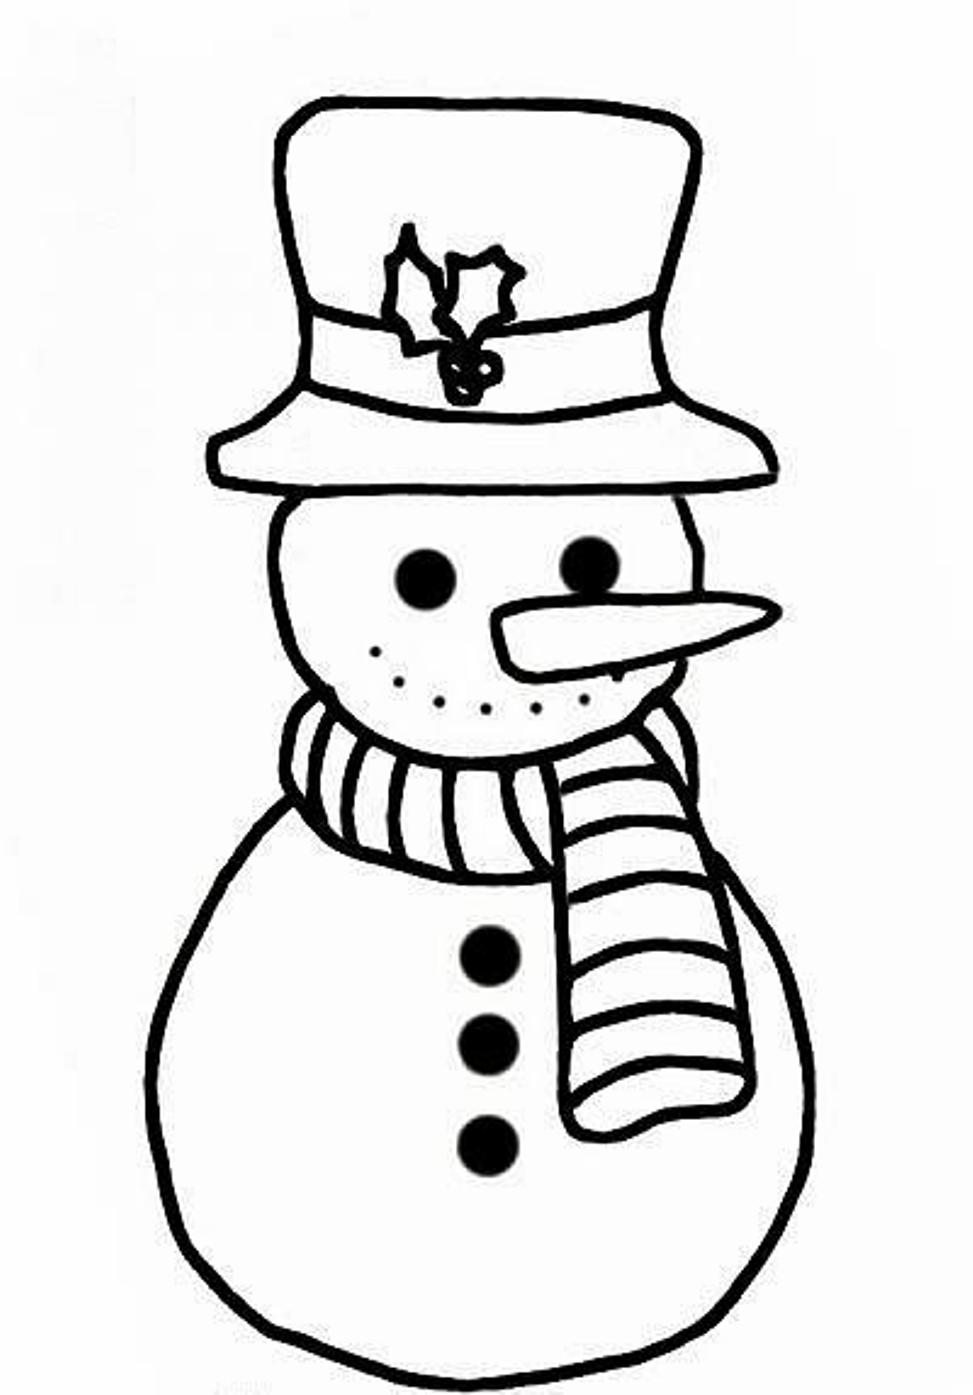 coloring snowman free printable snowman coloring pages for kids snowman coloring